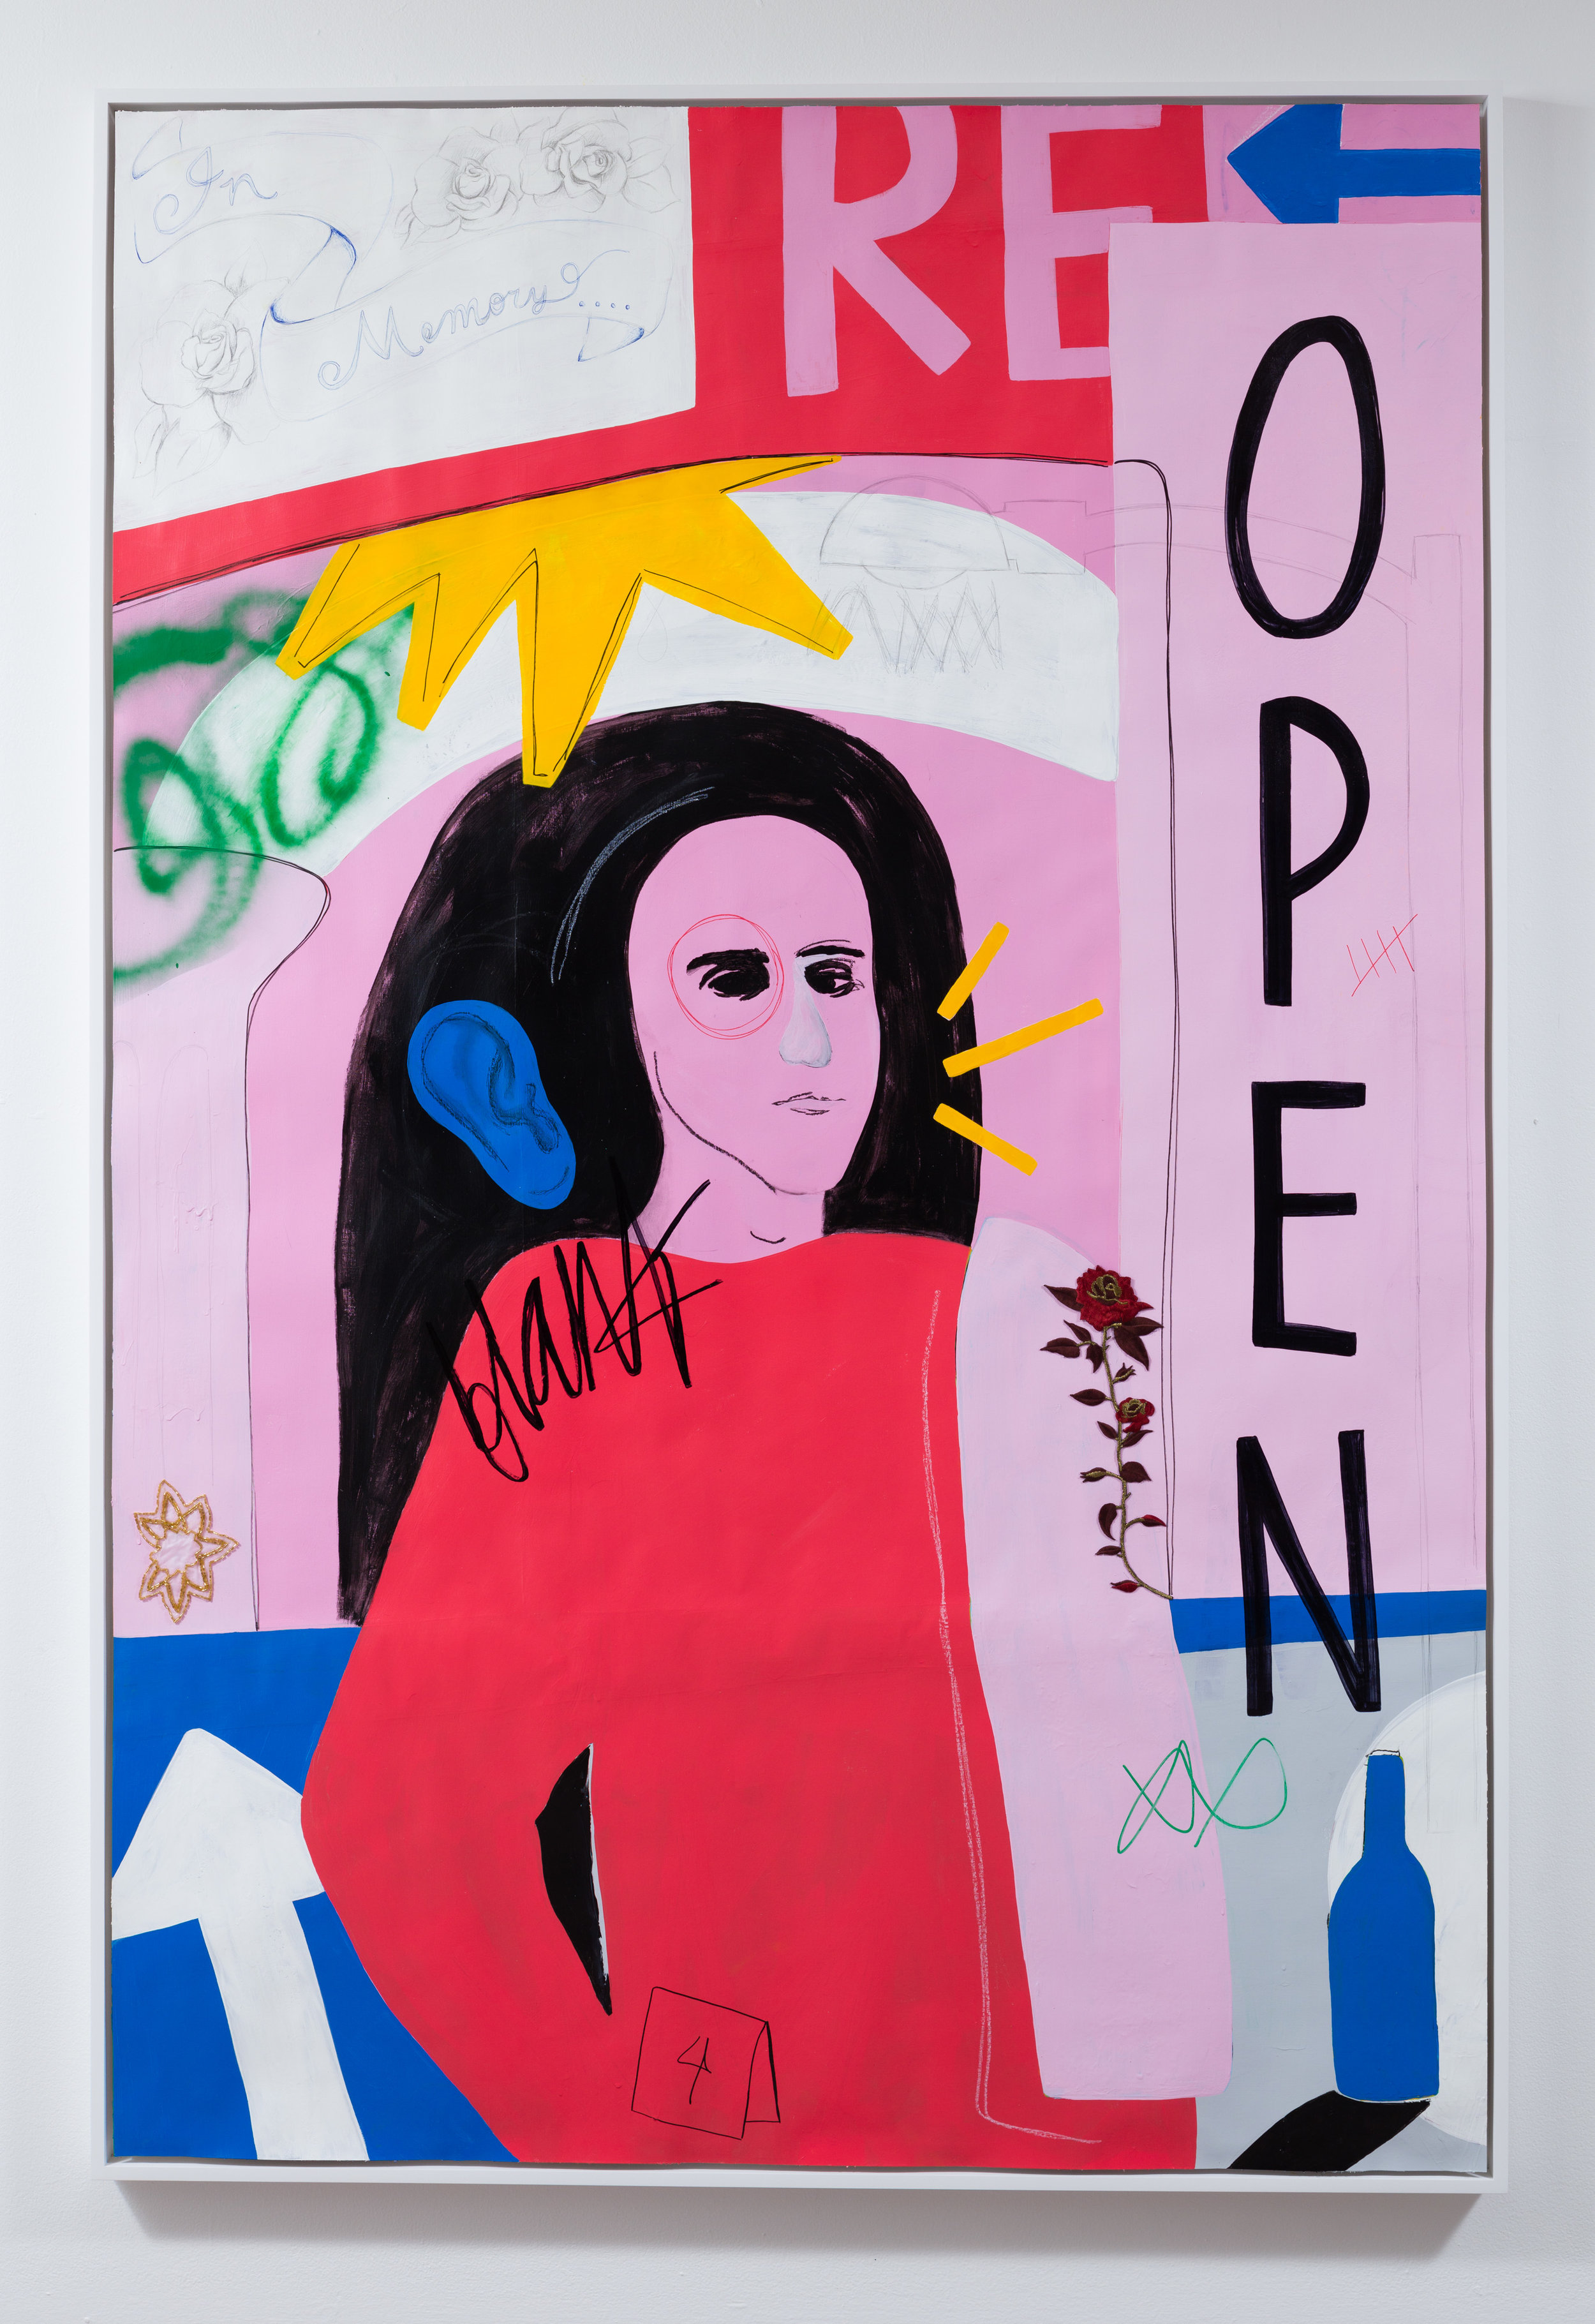 Open,  acrylic, sharpie, spray paint, beaded and embroidered appliques on paper, 72 x 48 inches,  unframed, 2017.